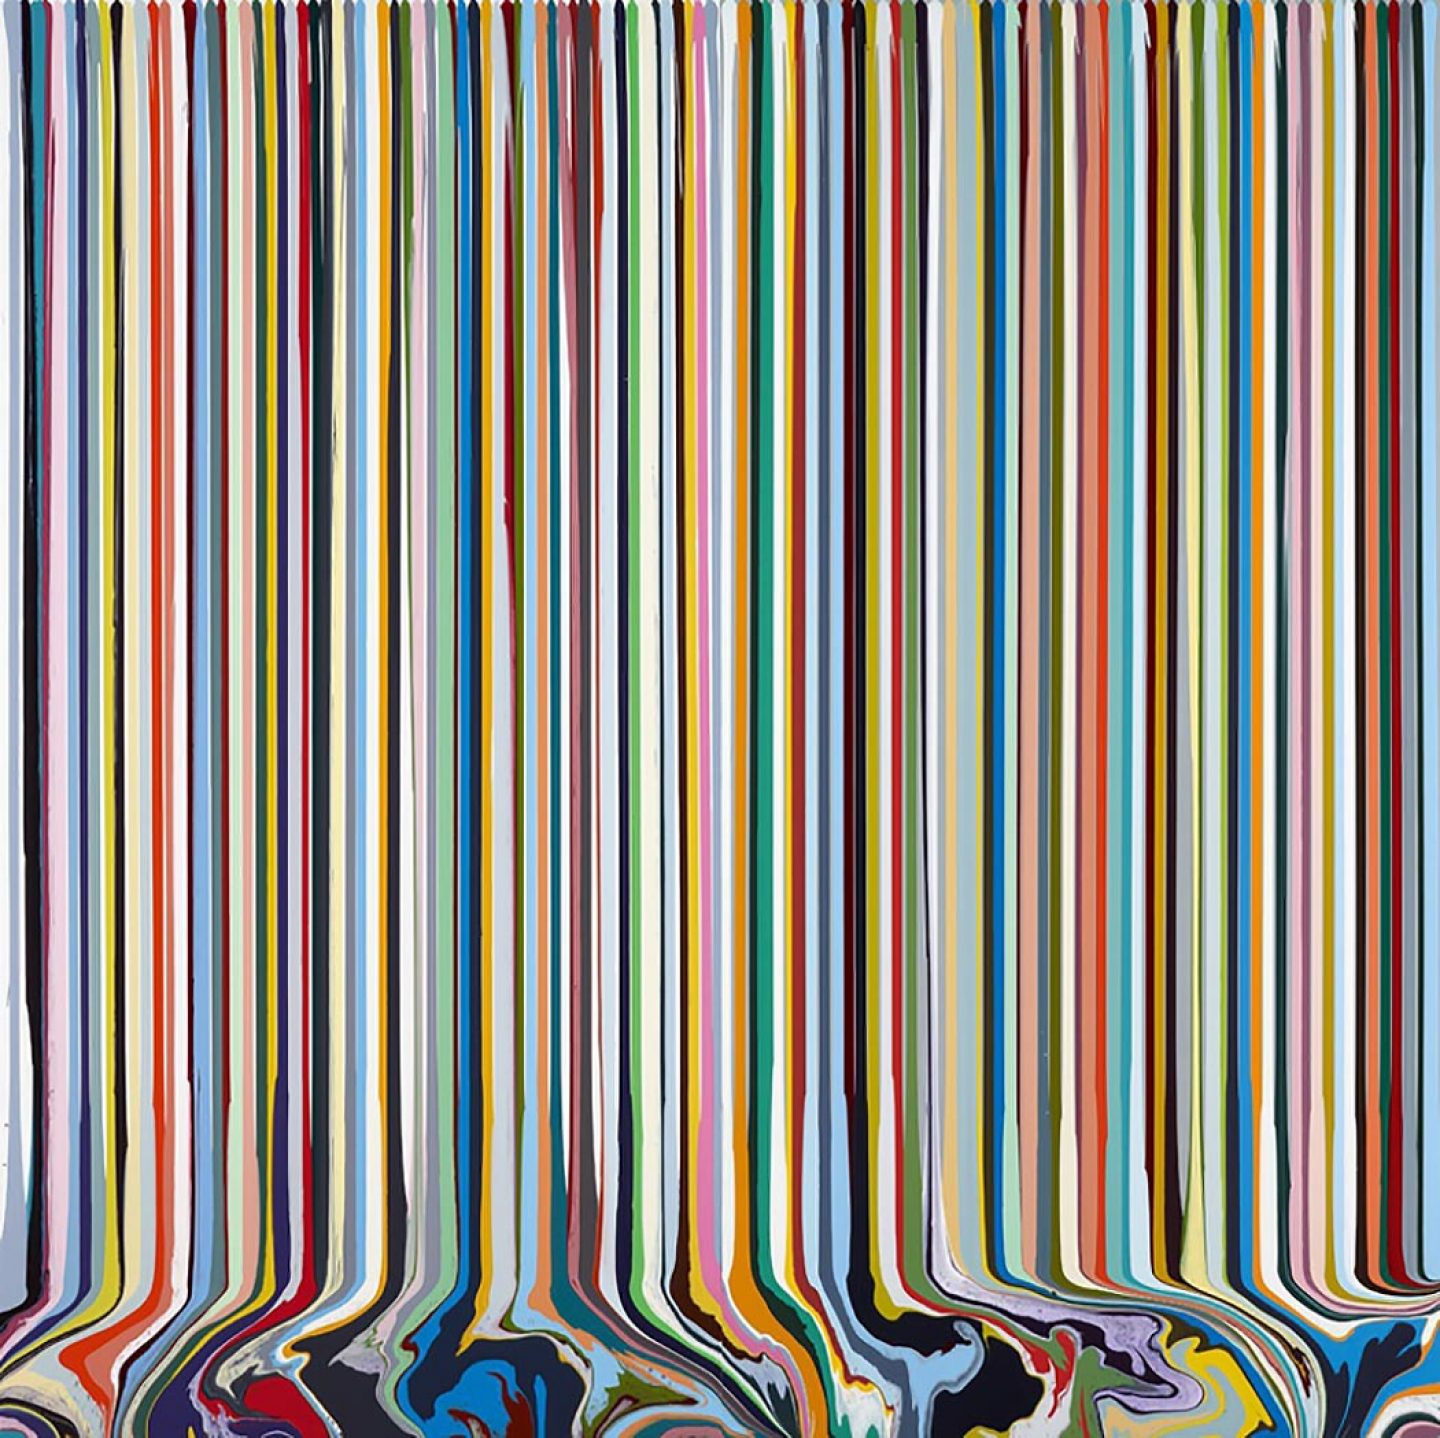 iGNANT_Art_Ian_Davenport_Puddle_Paintings_11